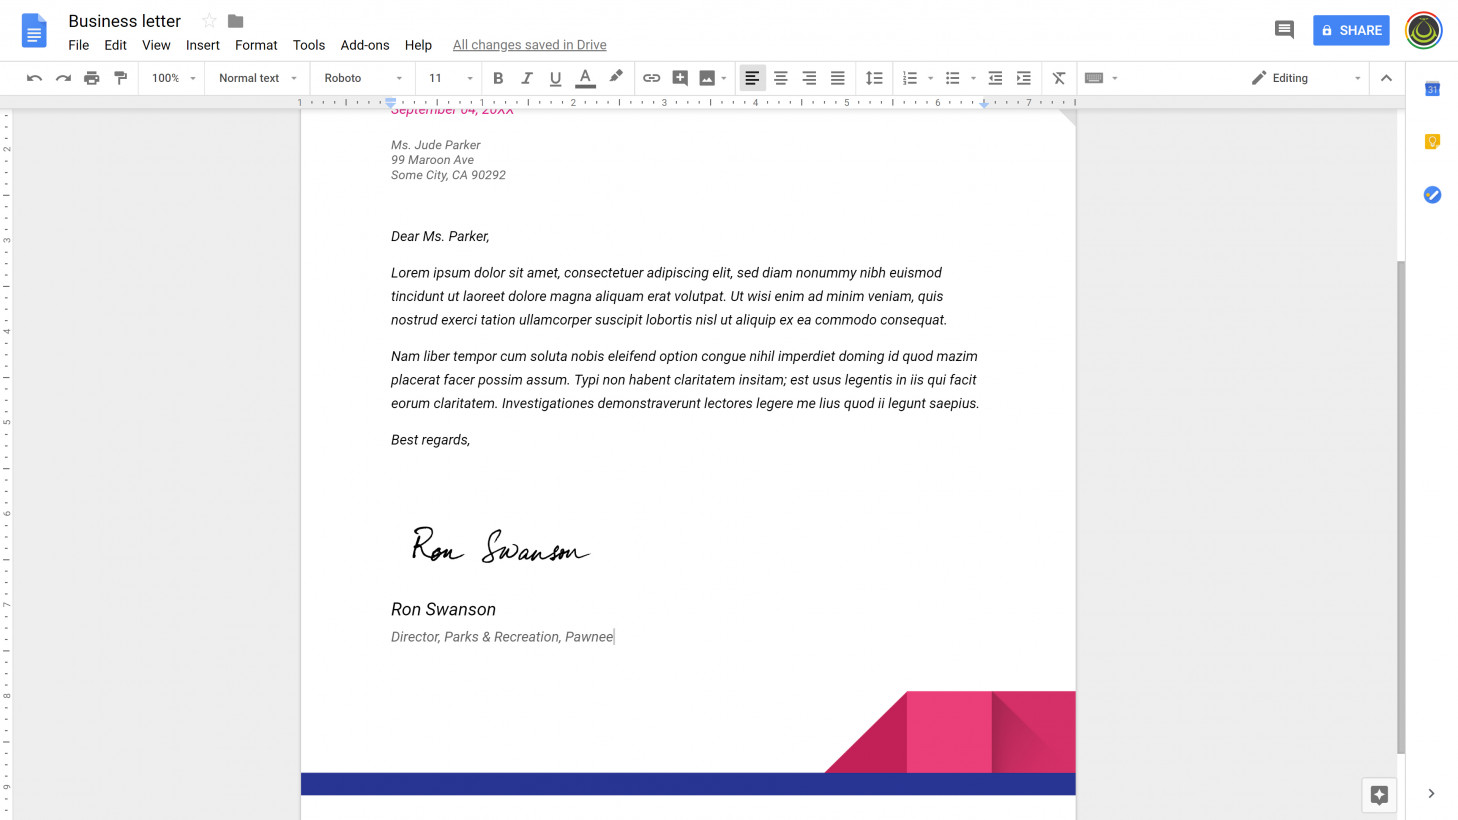 Once you've got a scanned signature, it's easy to add them to documents